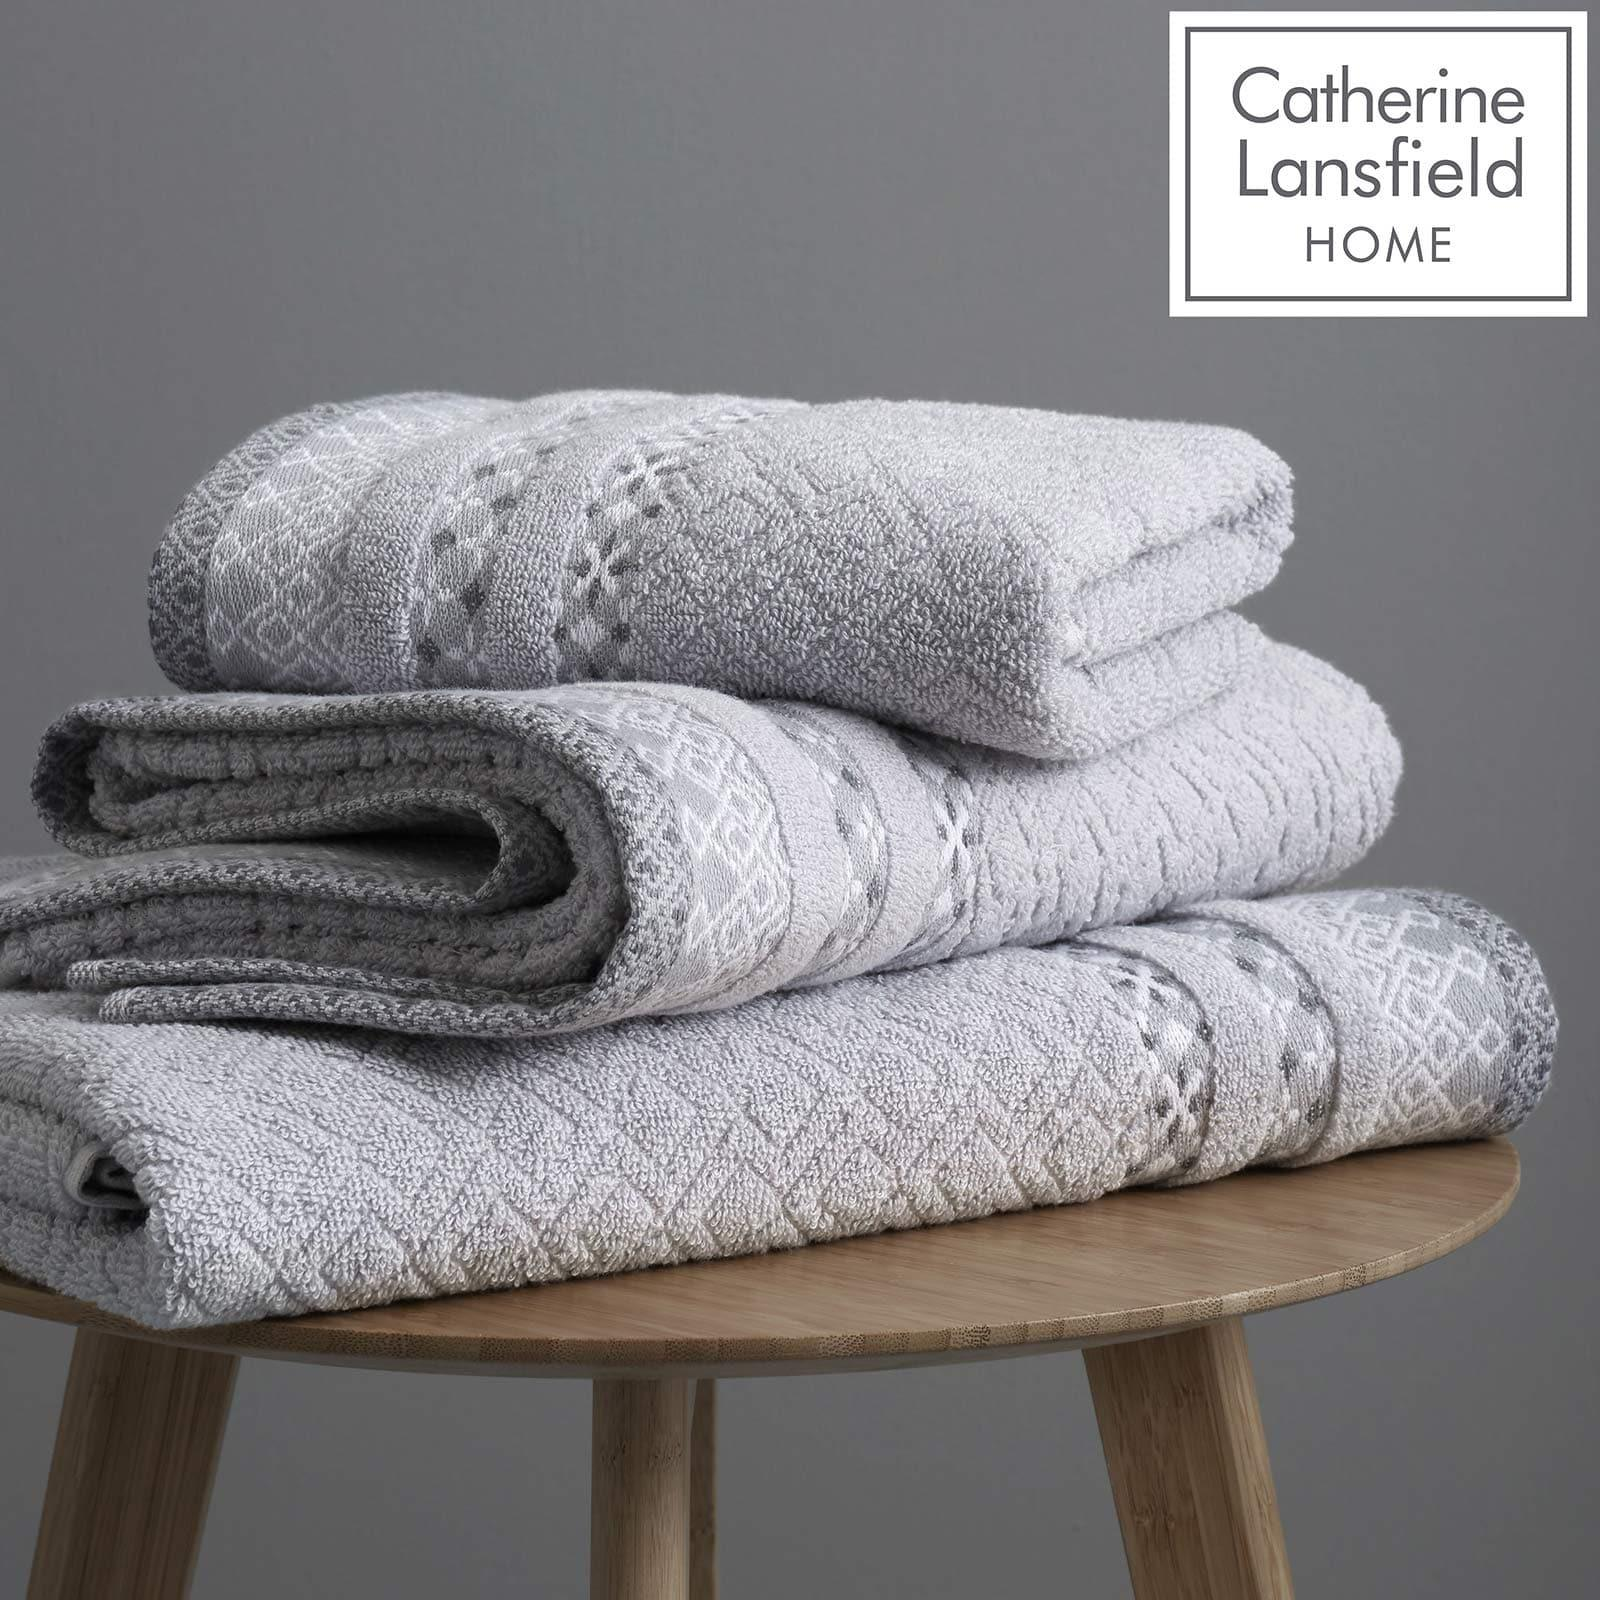 Malawa Geo Grey 2 Piece Towel Sets -  - Ideal Textiles